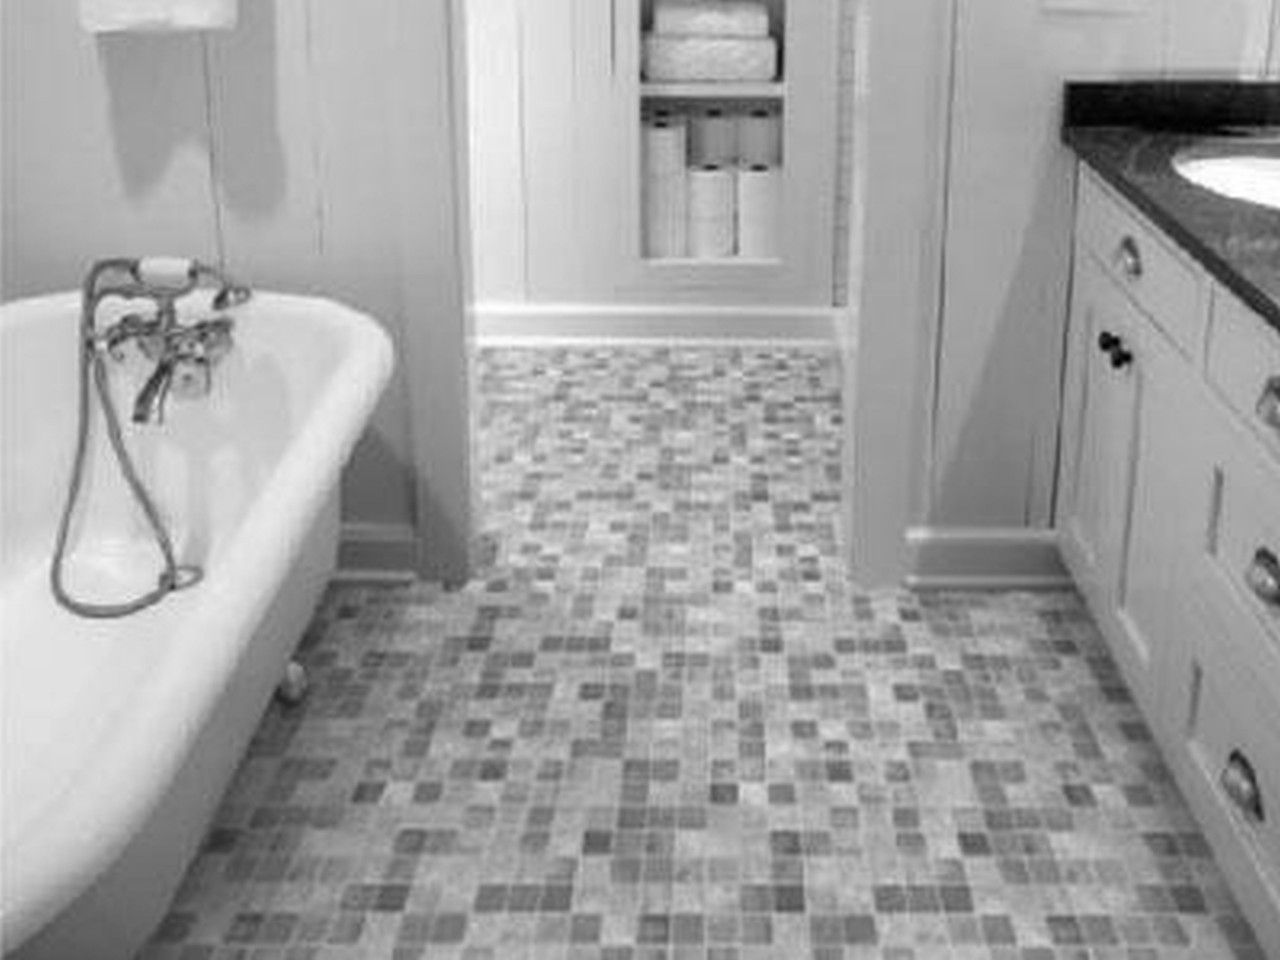 Black And White Bathroom Floor Tile Bathroom Tile Designs Scenic Implements Balance Bath Elegant Bathroom Flooring Bathroom Flooring Best Bathroom Flooring